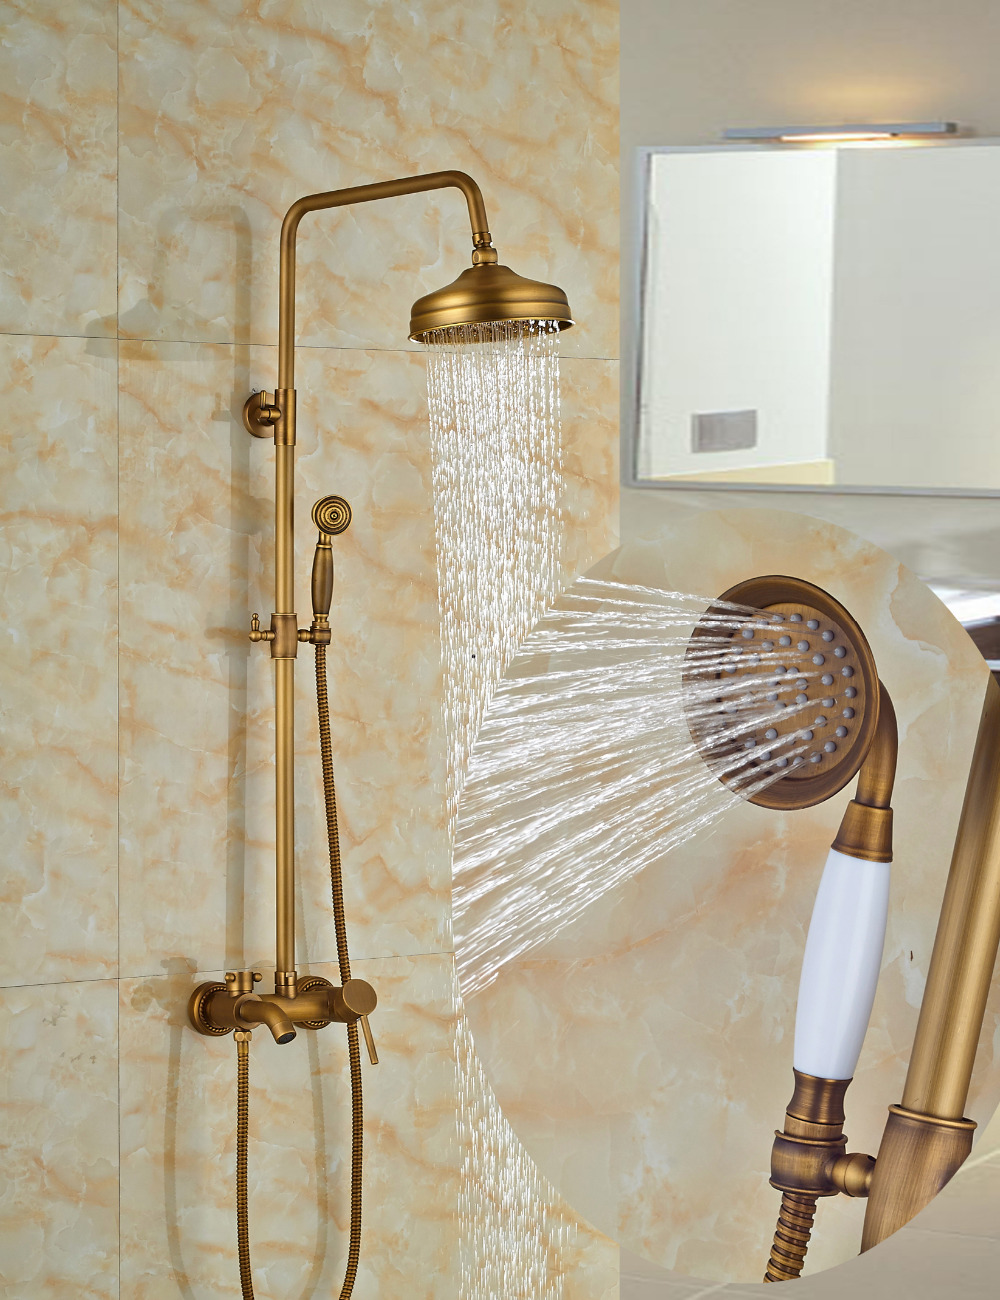 Nellie Antique Brass Shower Set With 8 Inch Rain Head Handheld